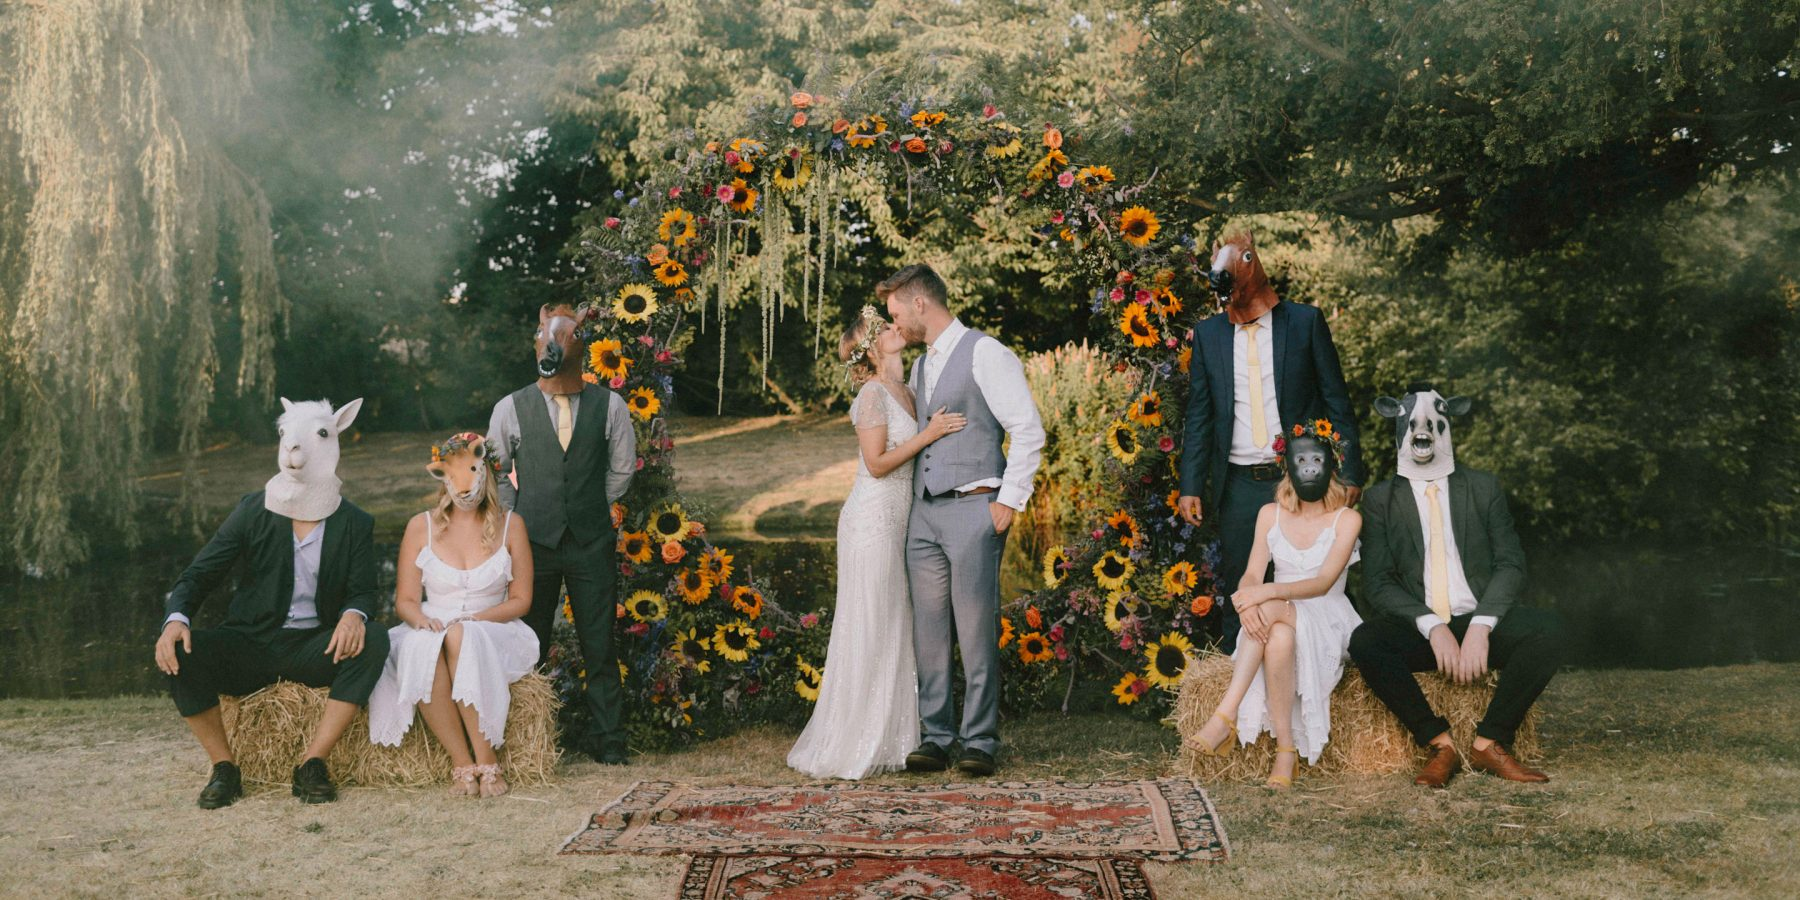 Boho wedding group with animal masks